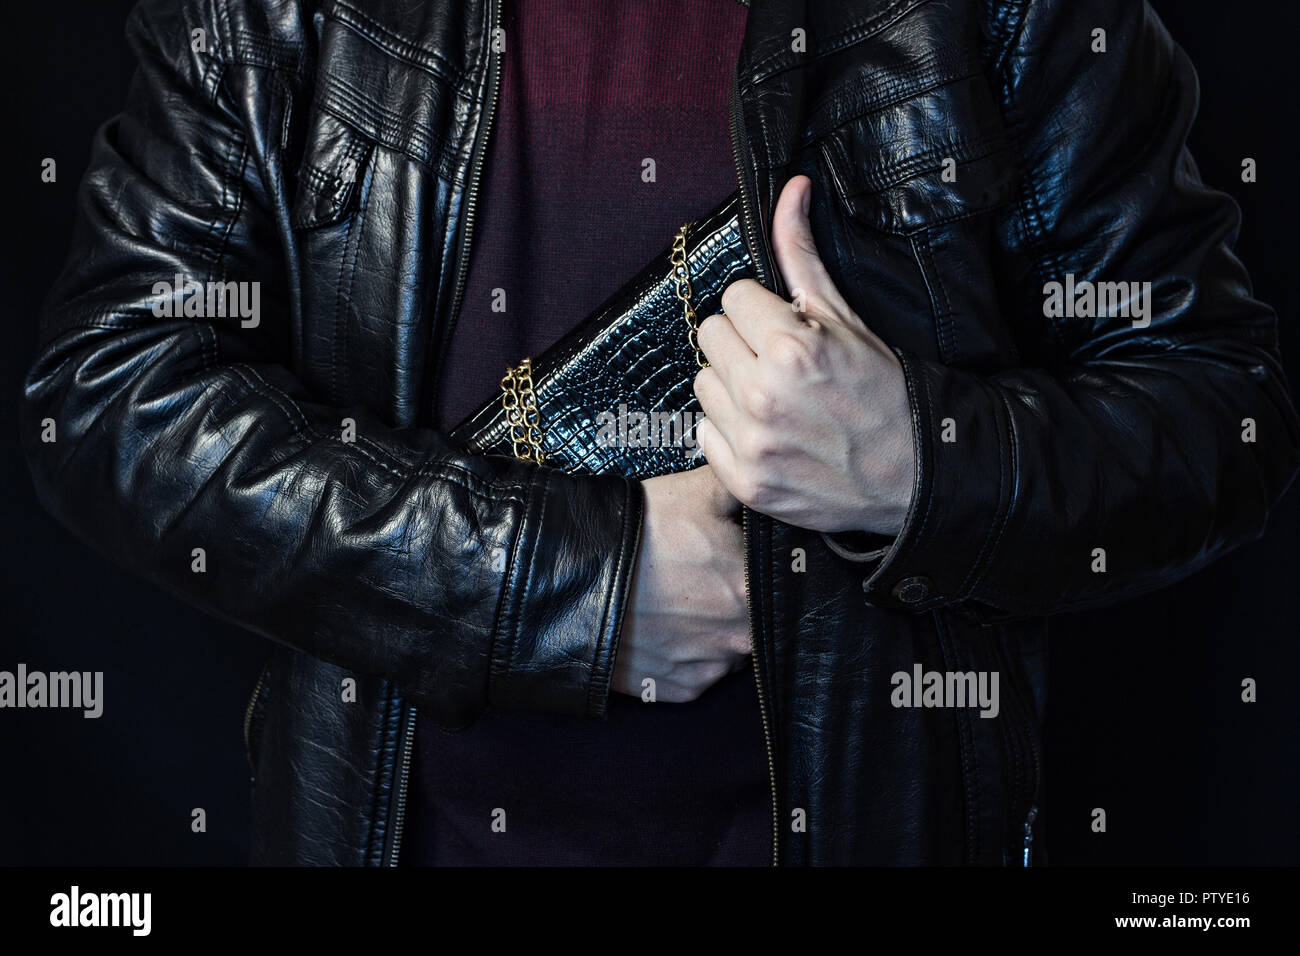 A man hides a woman's handbag in his bosom, the theft of a handbag, a black background, Theft of bags - Stock Image